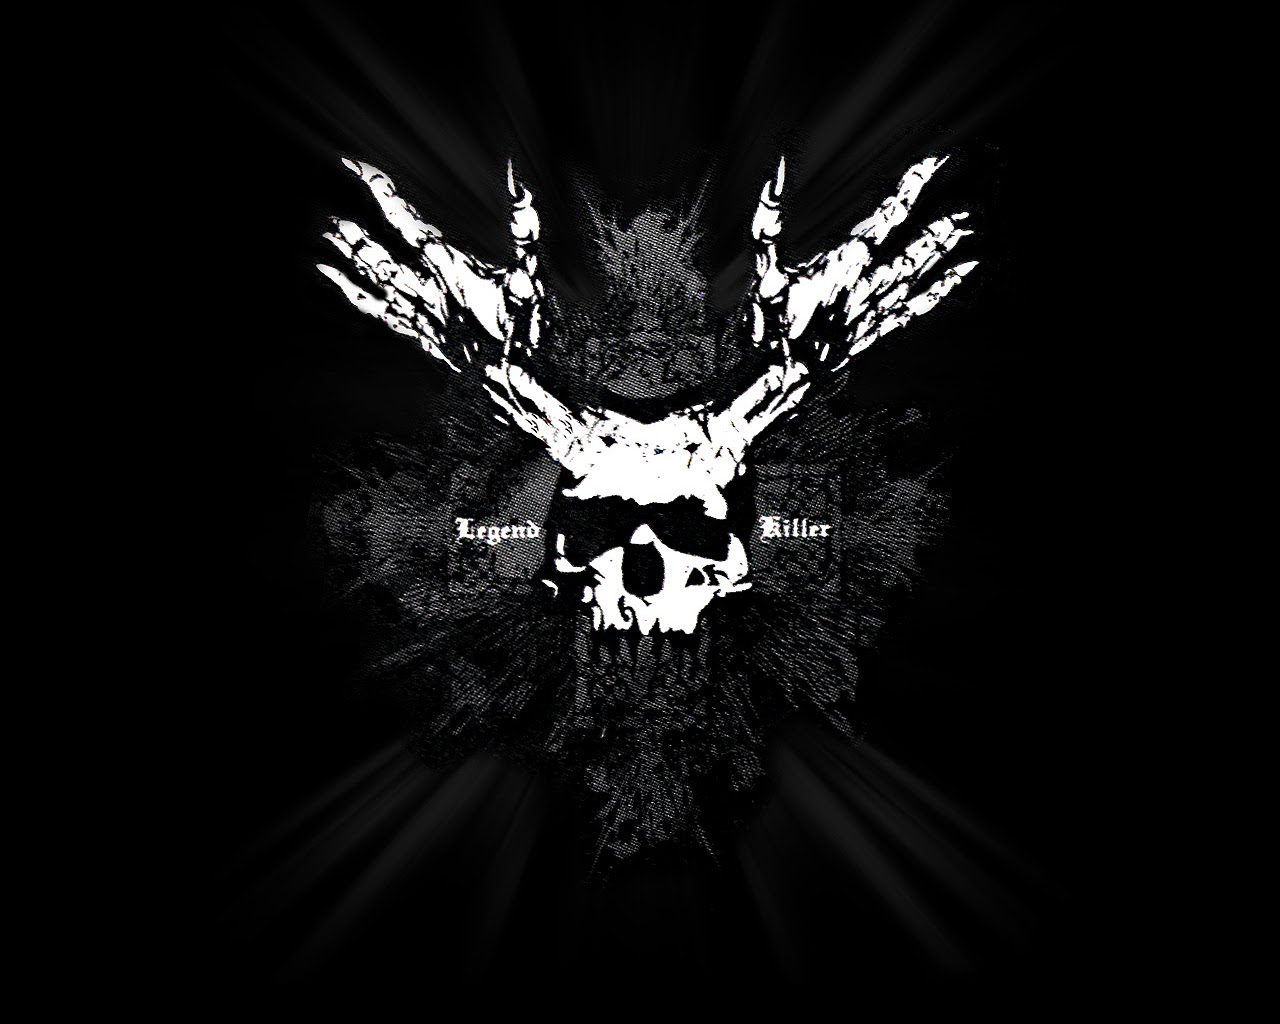 This is a mixture of cool,funny and scary skull wallpapers...hope you like it!